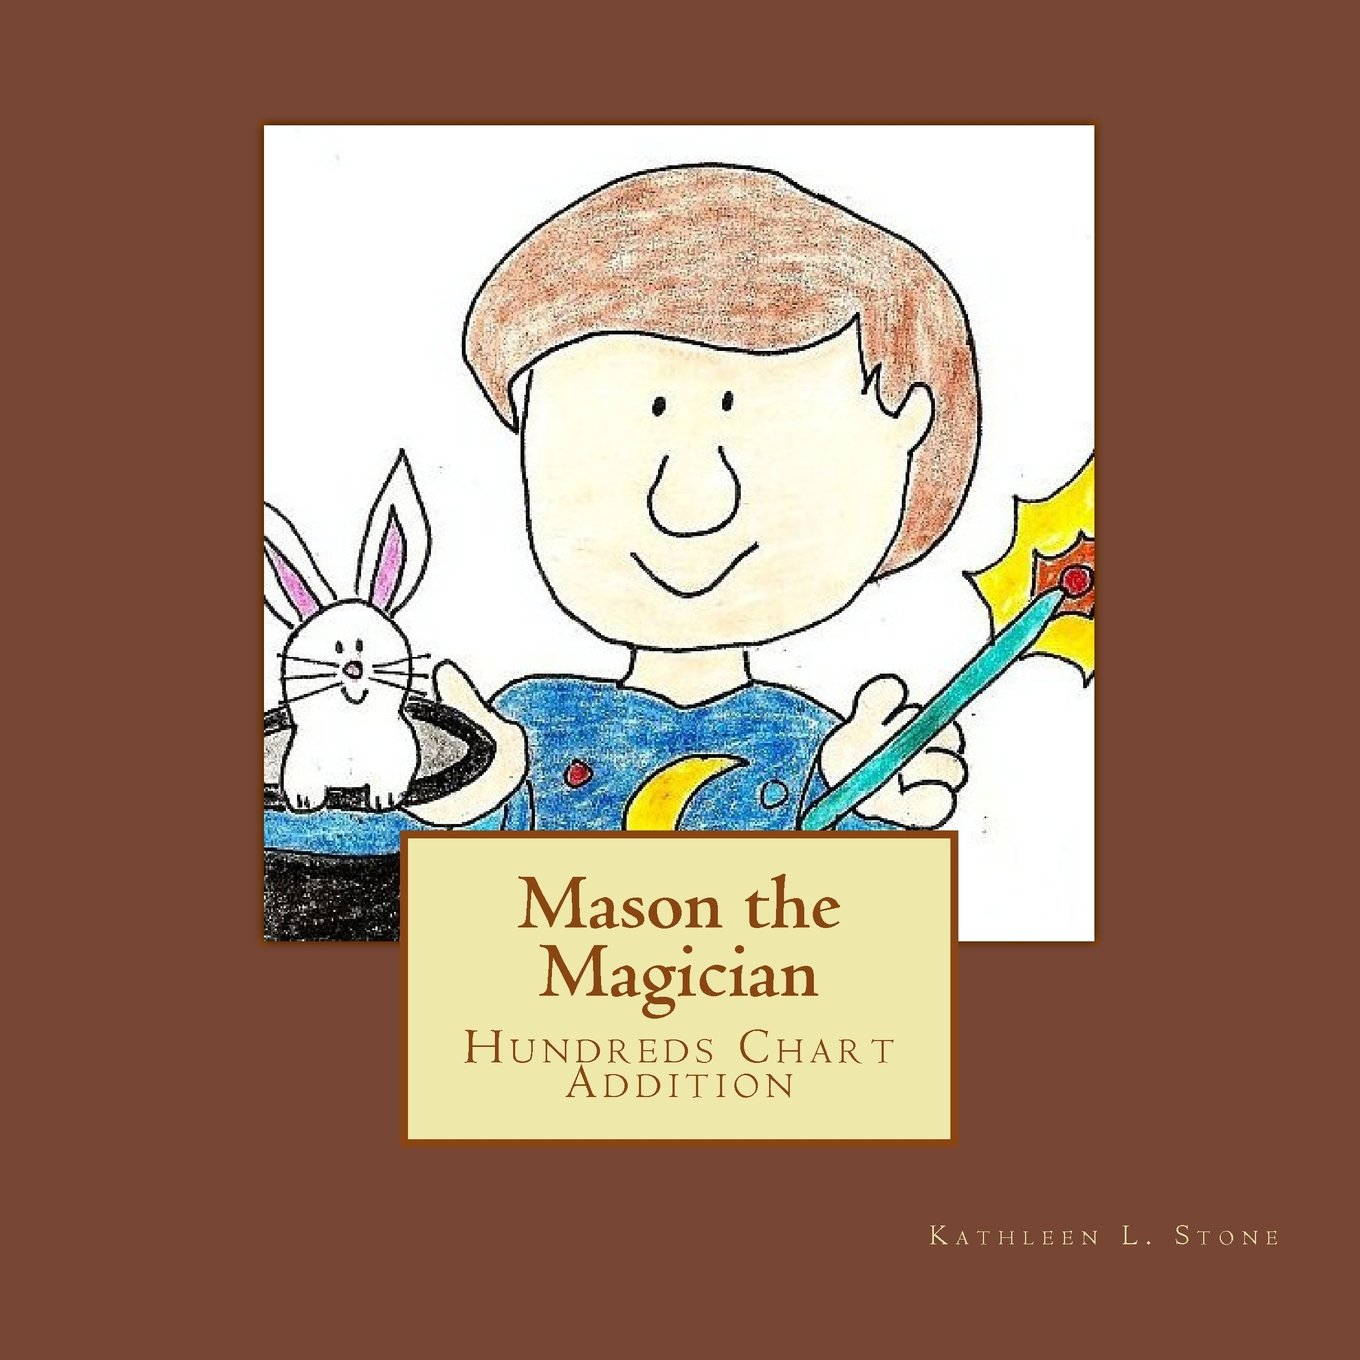 Mason the Magician: Hundreds Chart Addition, Stone, Kathleen L.